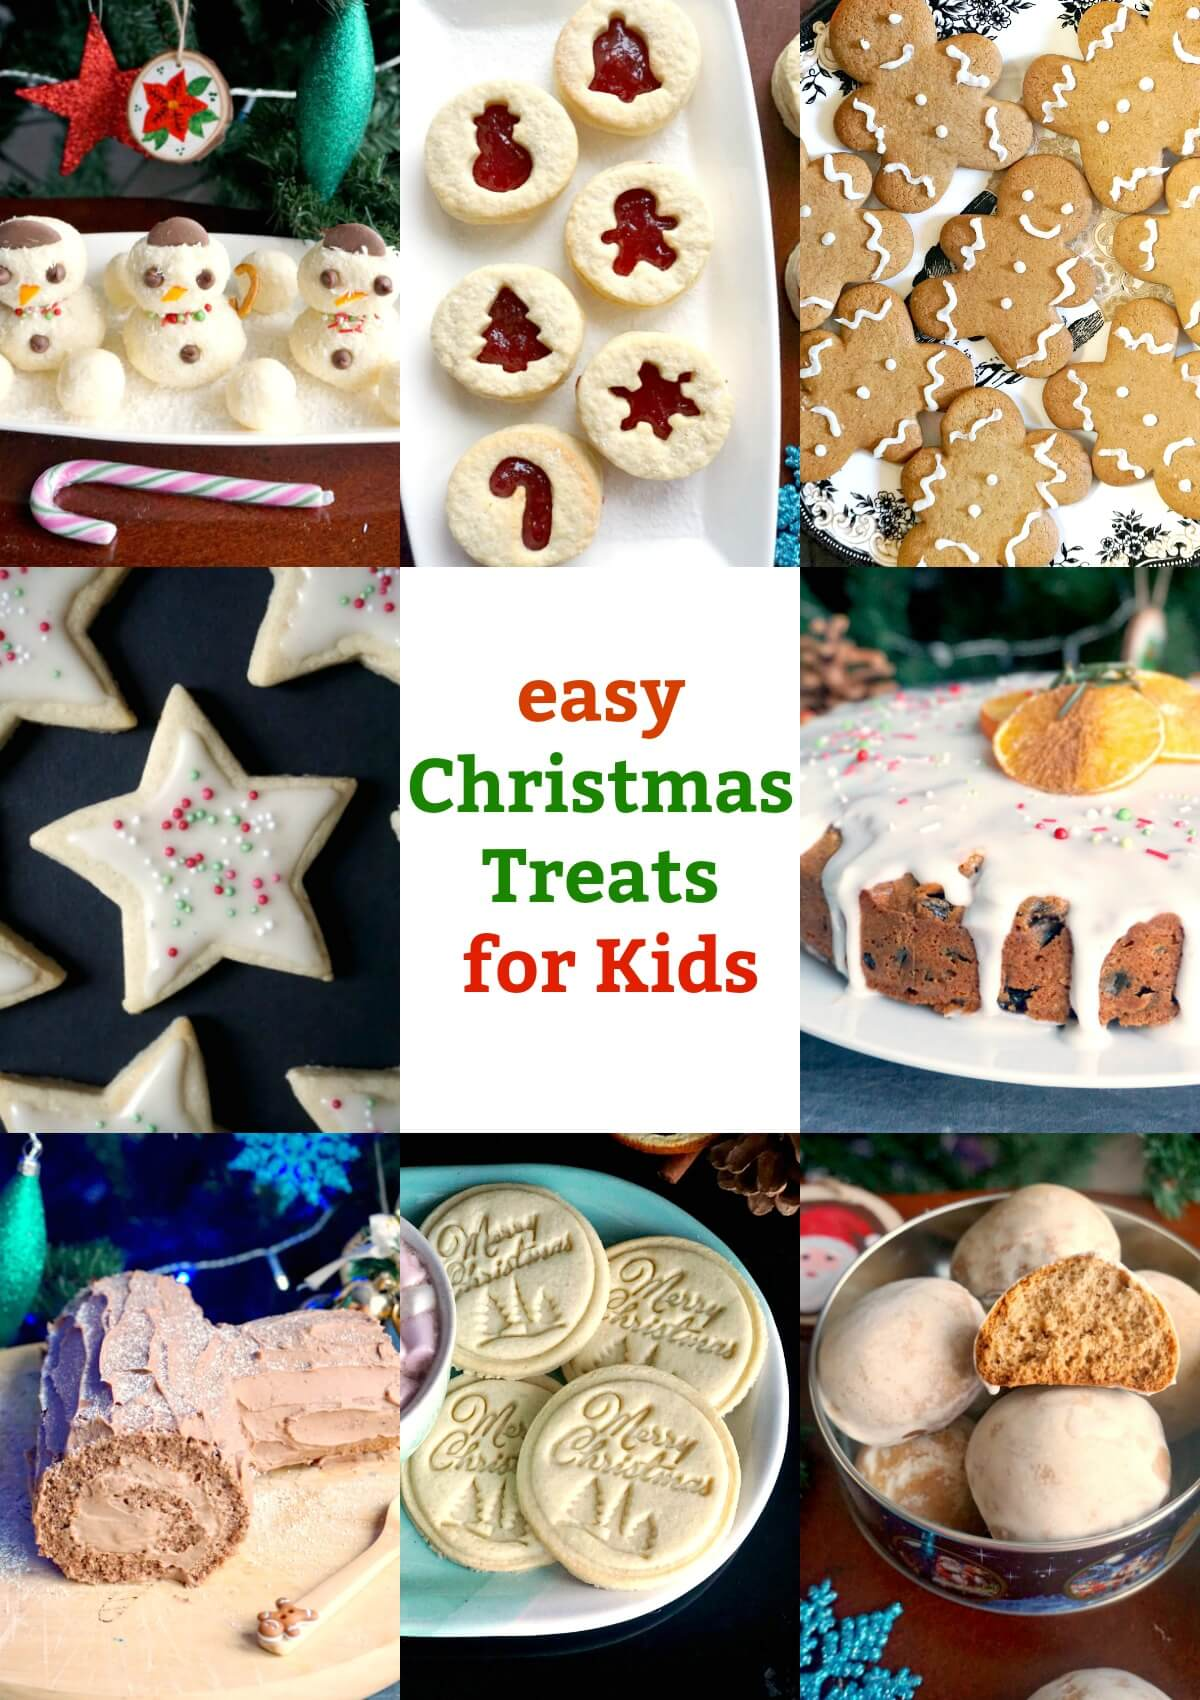 A collage of photos with Christmas Treats to bake with the kids